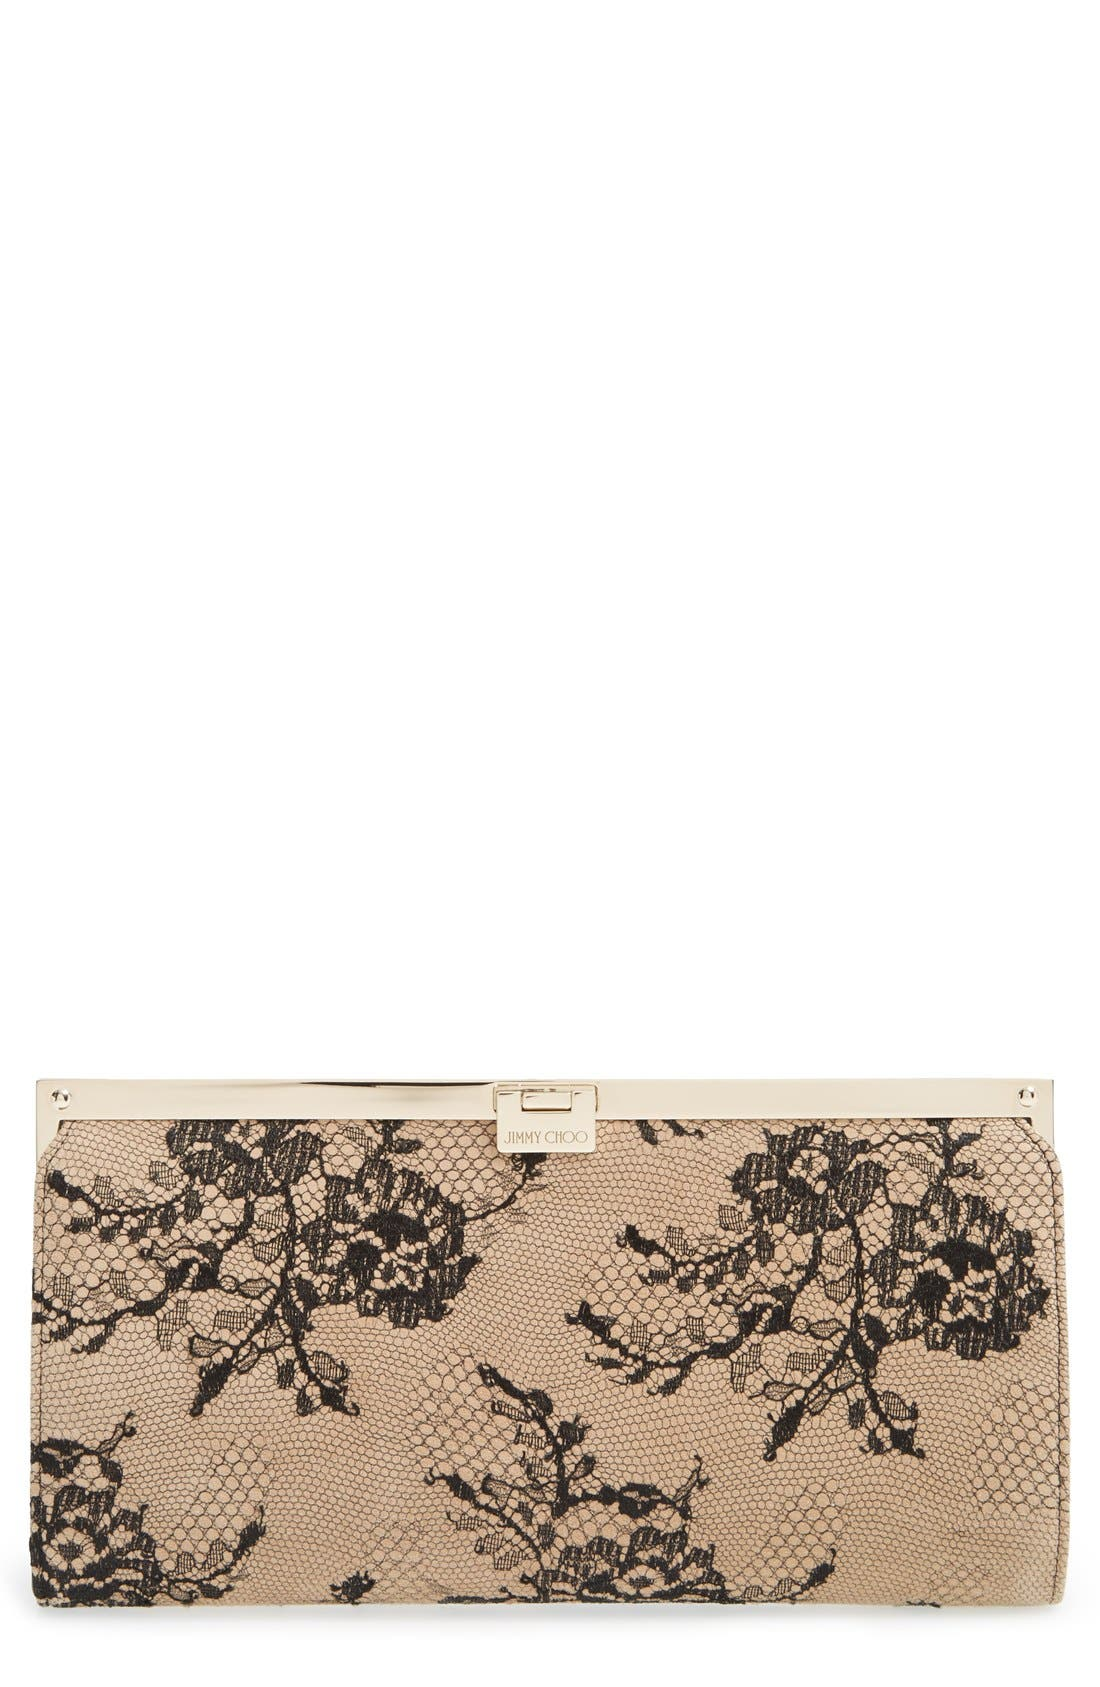 Camille Lace & Leather Clutch,                             Main thumbnail 1, color,                             001